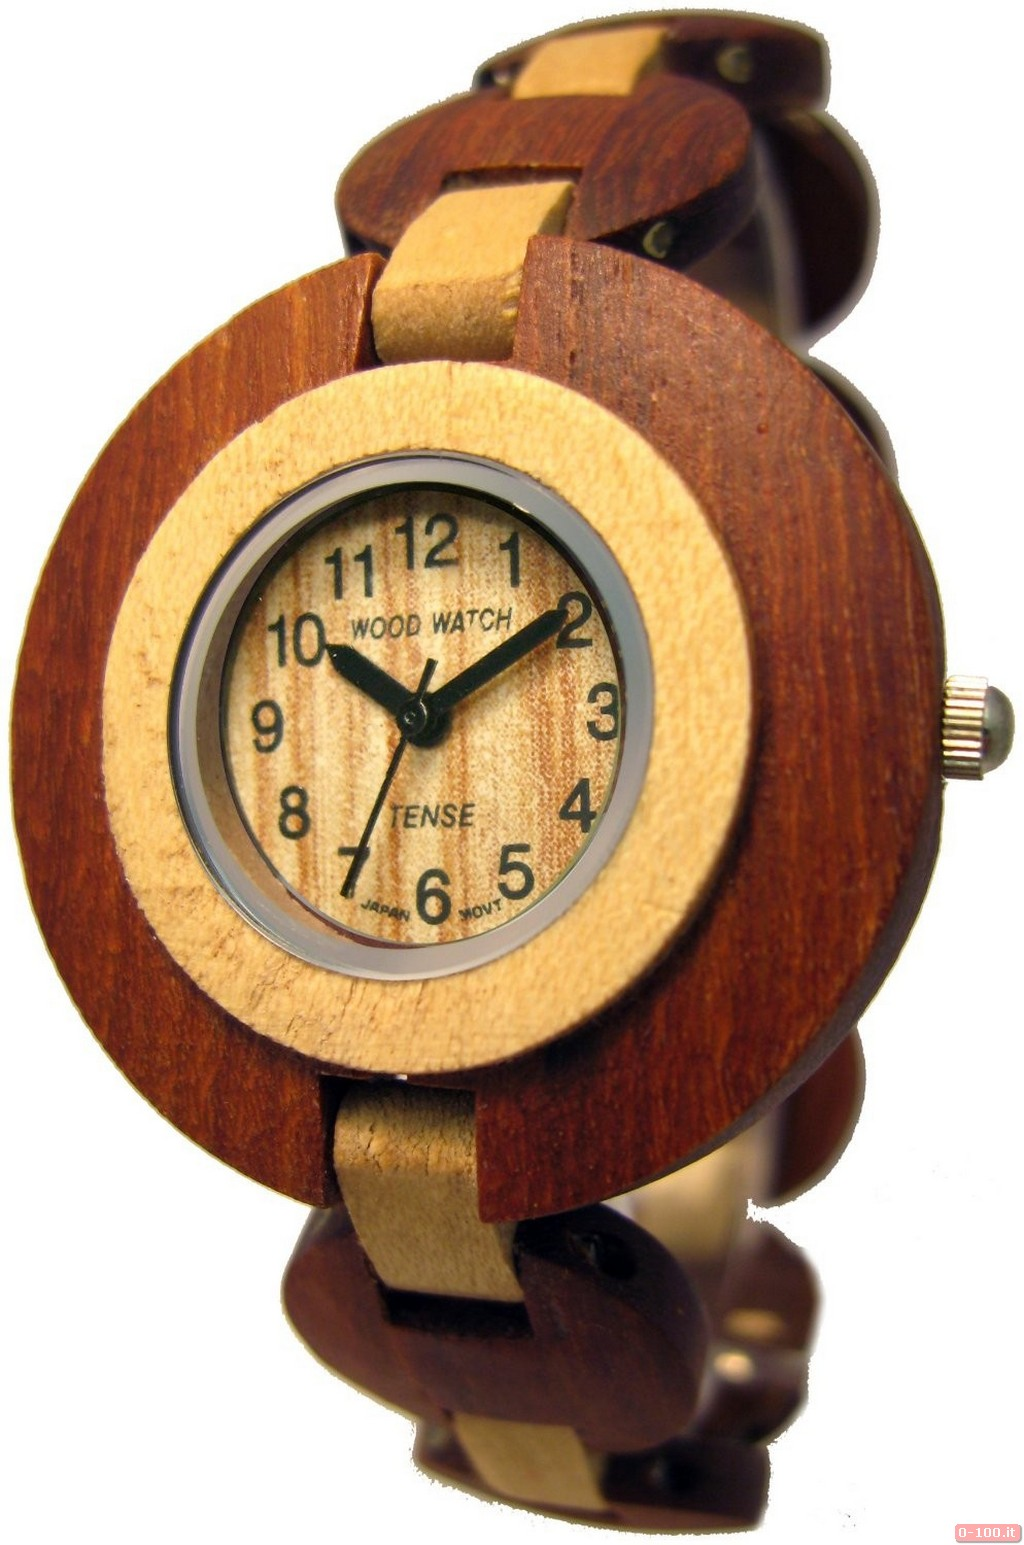 Tense Wood Watch_0-1007